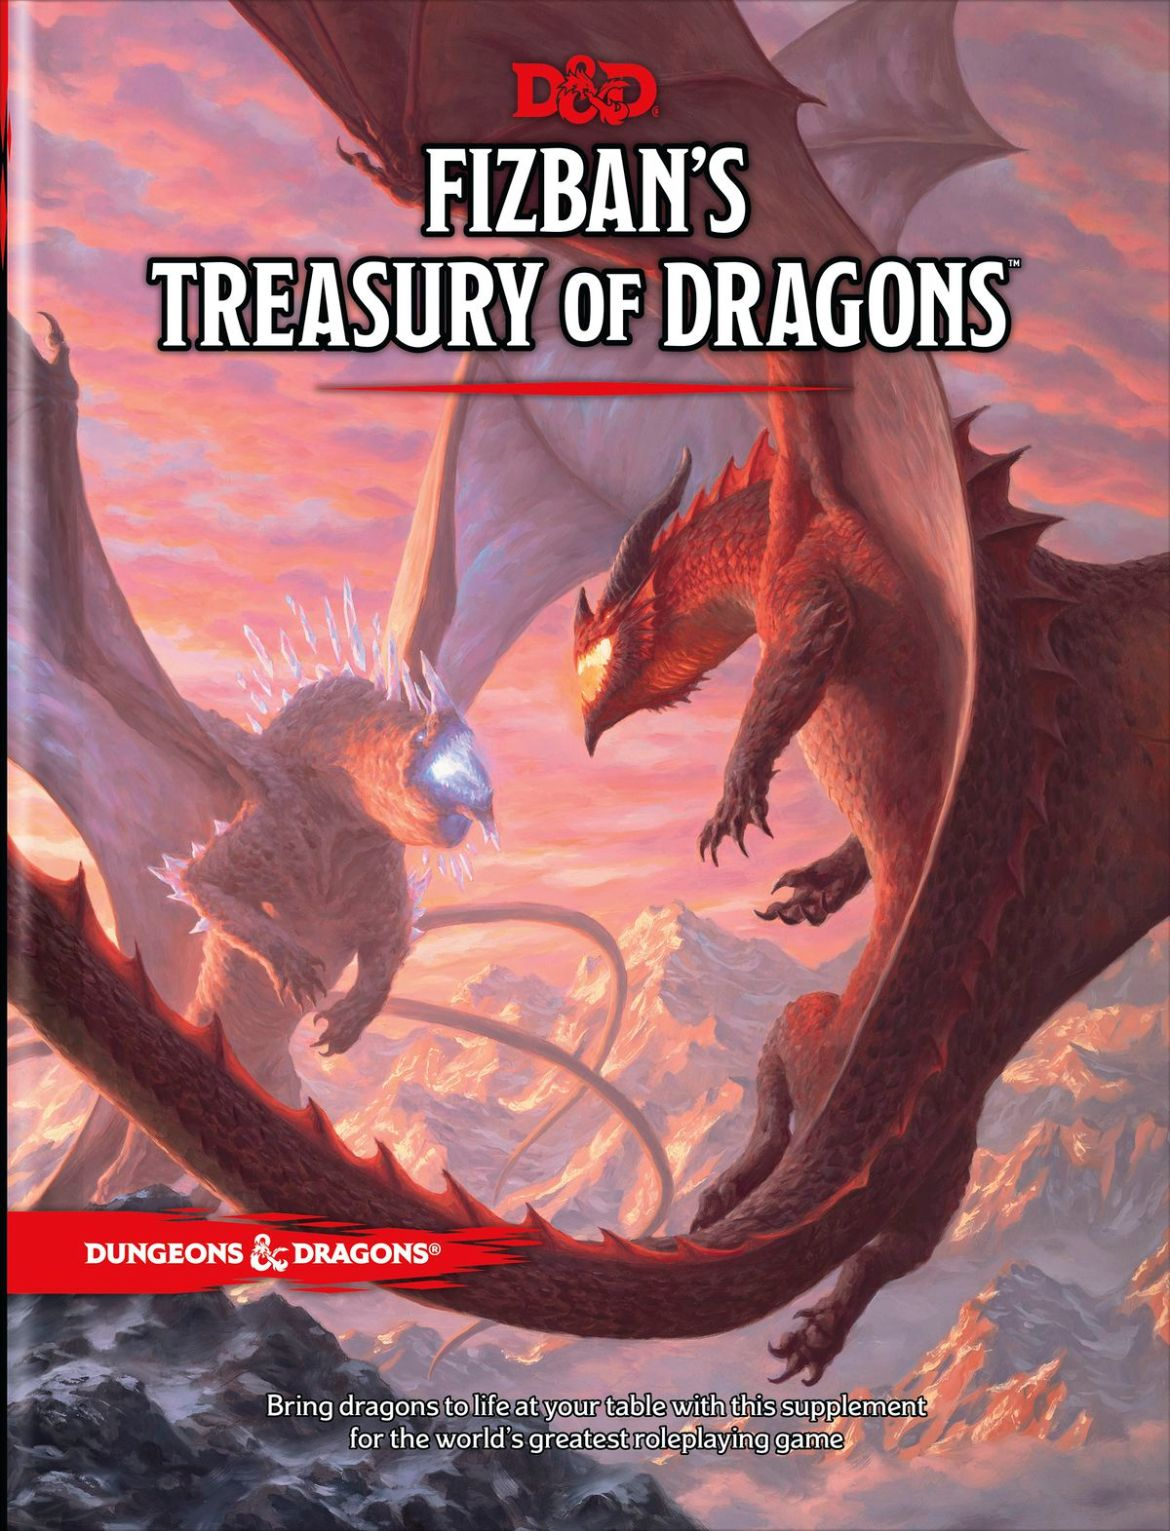 The primary cover of the D&D sourcebook Fizban's Treasury of Dragons